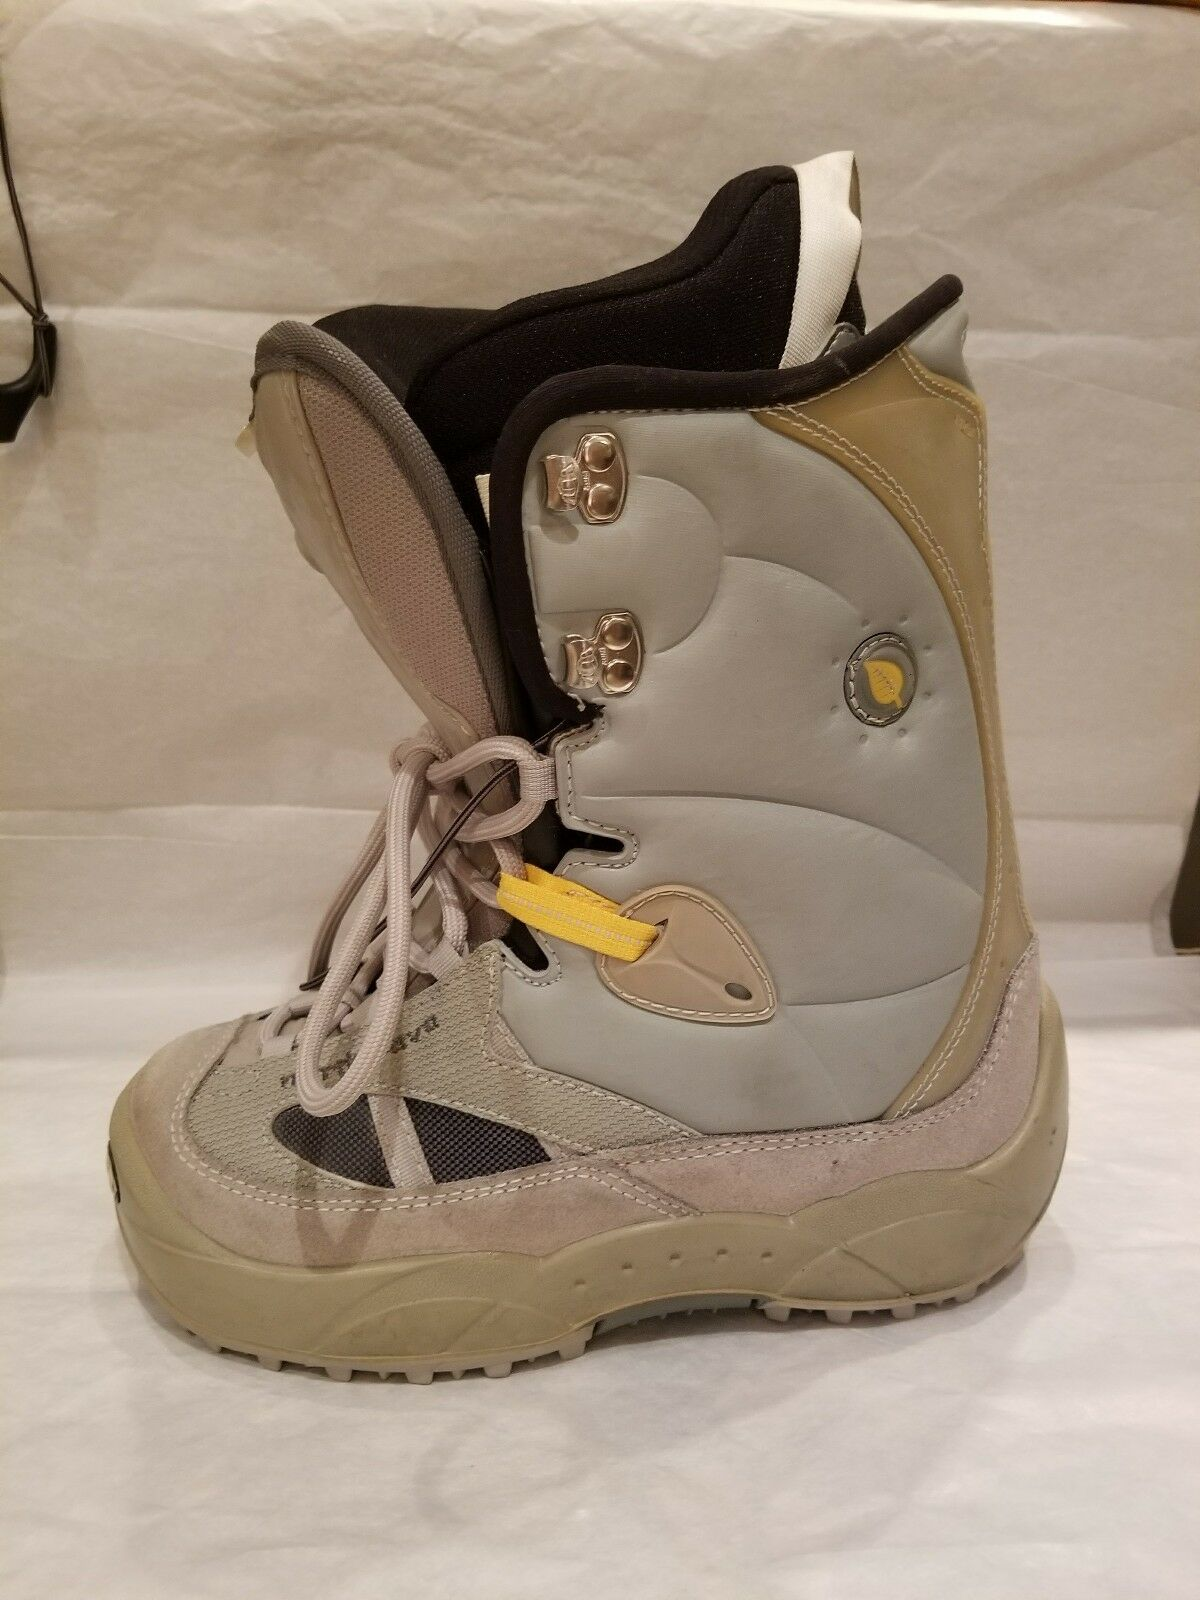 NORTHWAVE WOMENS SNOWBOARD BOOTS SIZE 5 6 LADY COLOR GREY baby bluee yellow MP245